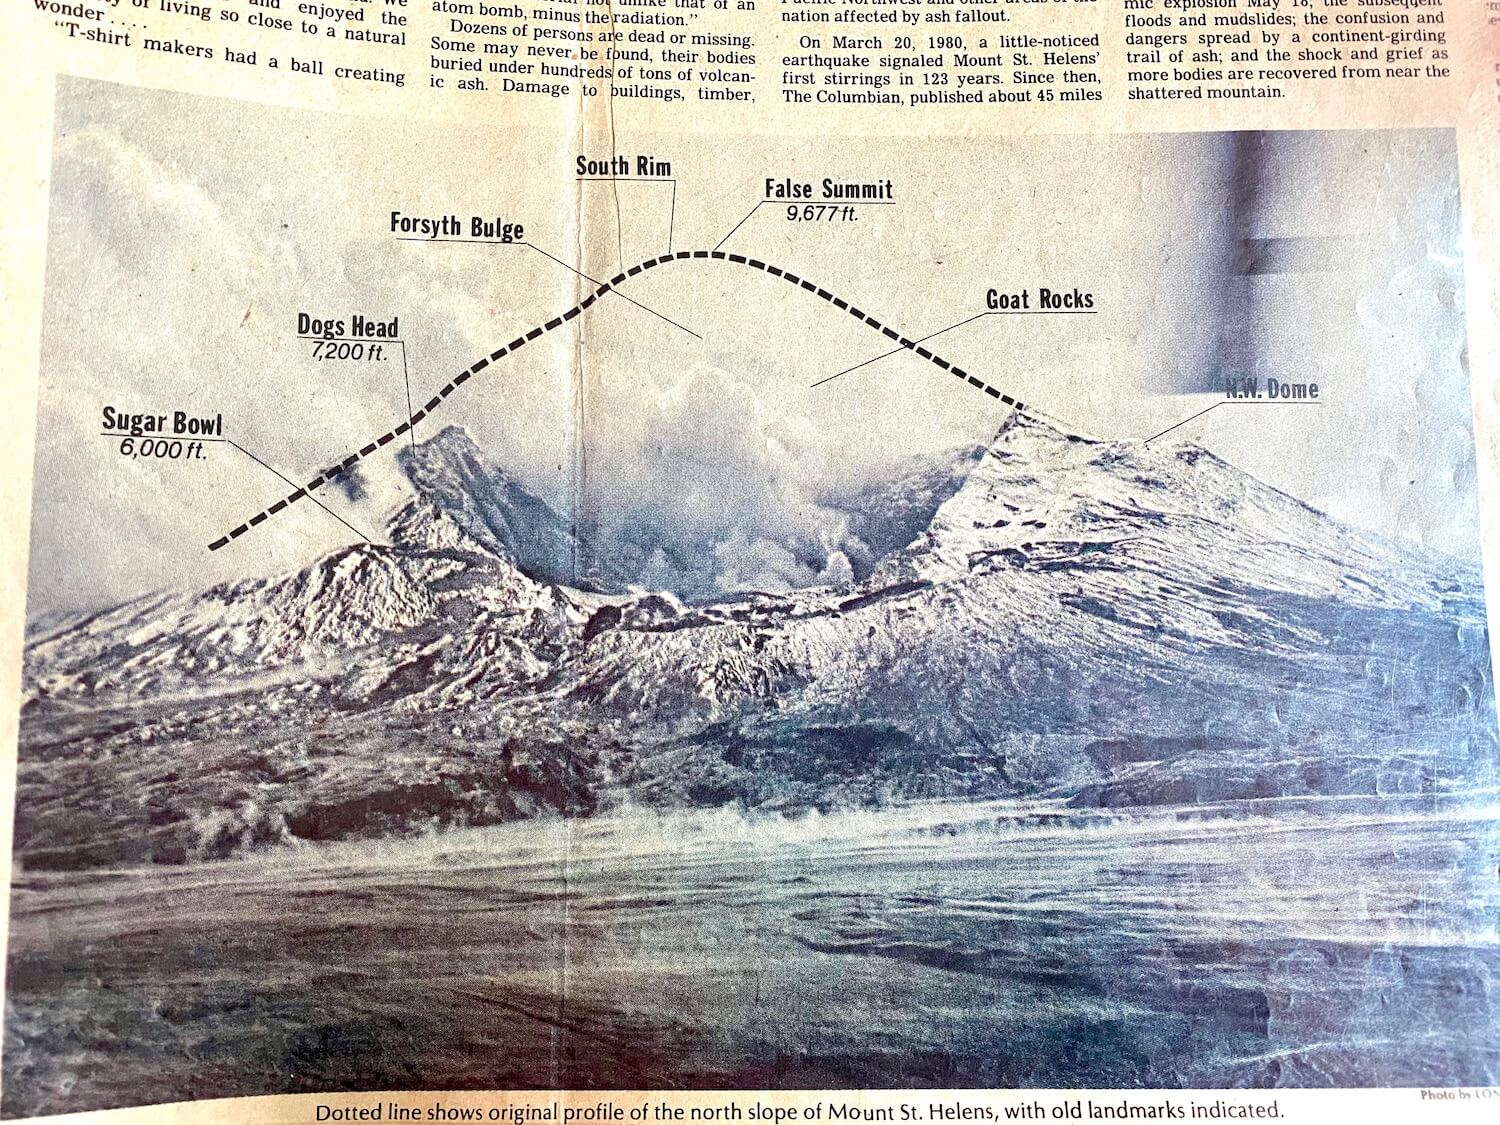 A newspaper clipping on display in the Mt. St. Helens Visitor Center showing the destruction of the volcanic blast that occurred on May 18, 1980, including the portion of the mountain that was effectively erased in the blast.